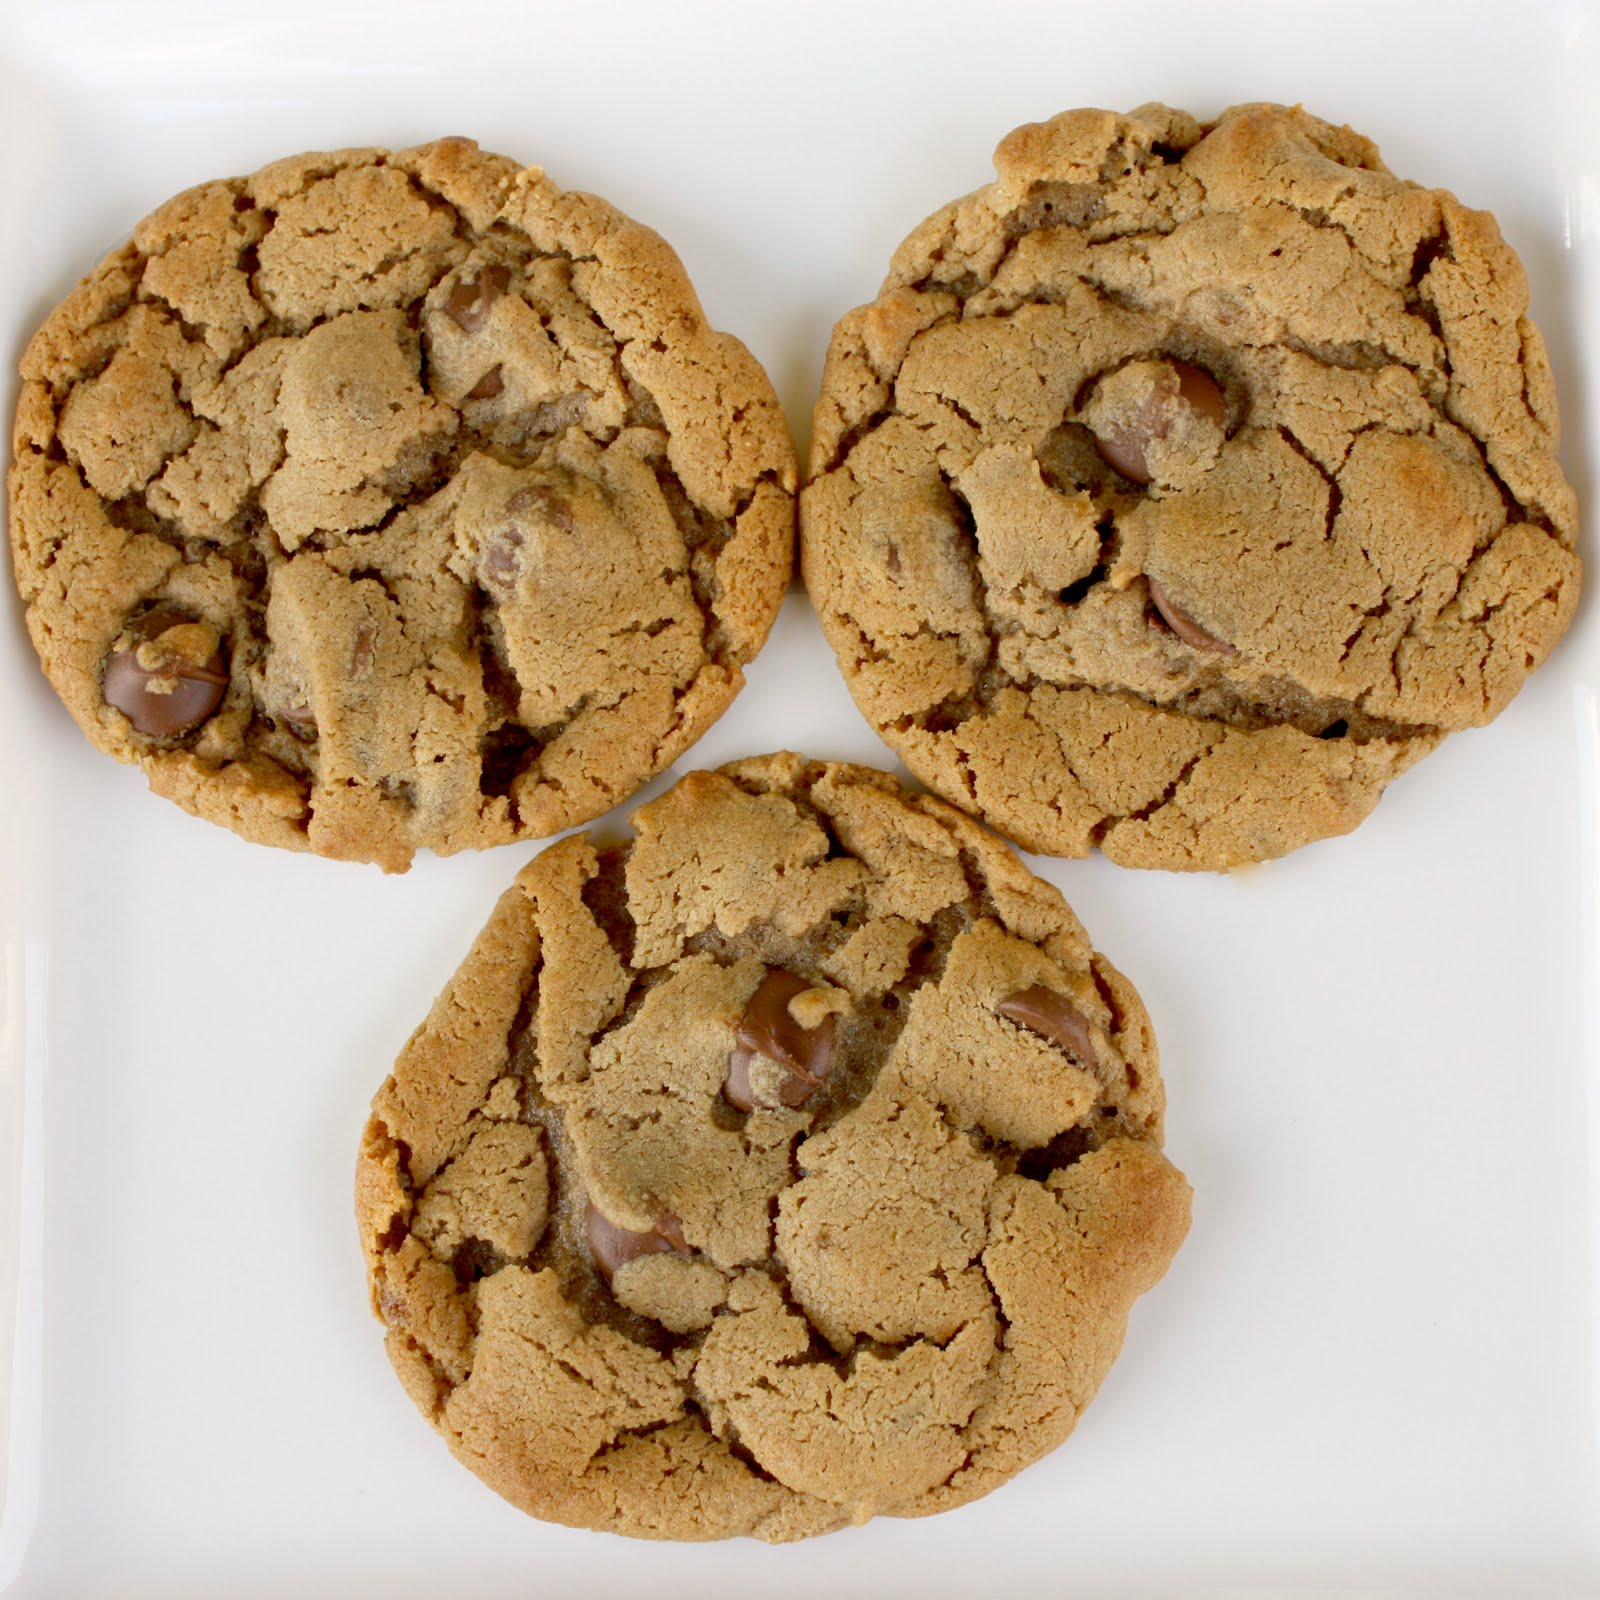 ... forever!: 5 ingredient Peanut butter, chocolate chip cookies, YUM